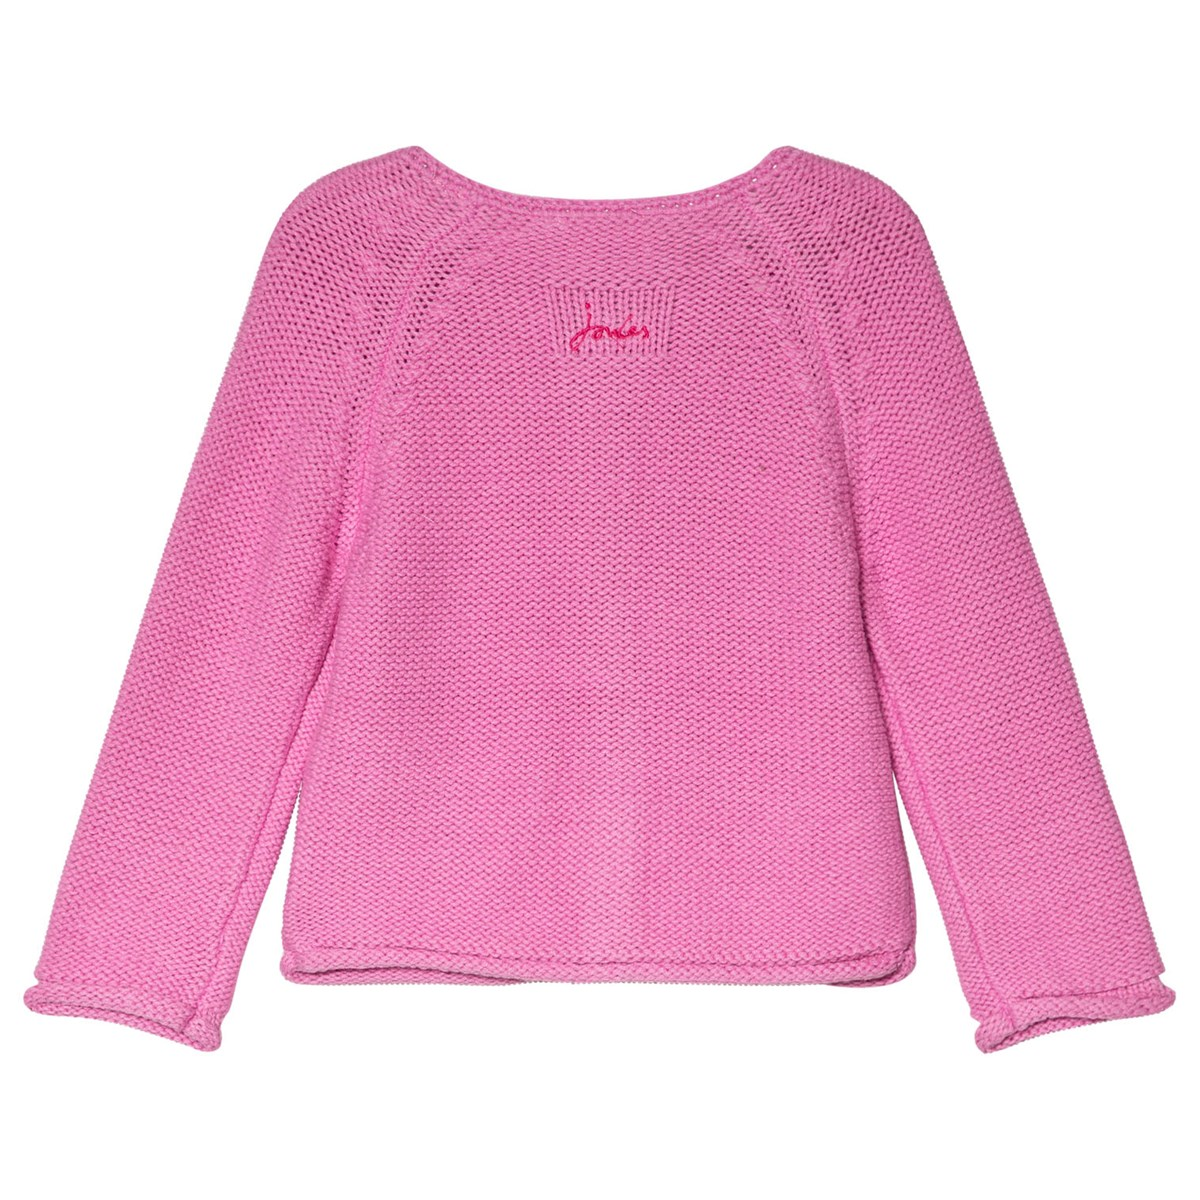 fb6721ef3c89 Joules Pink Dorrie Mouse Knitted Cardigan